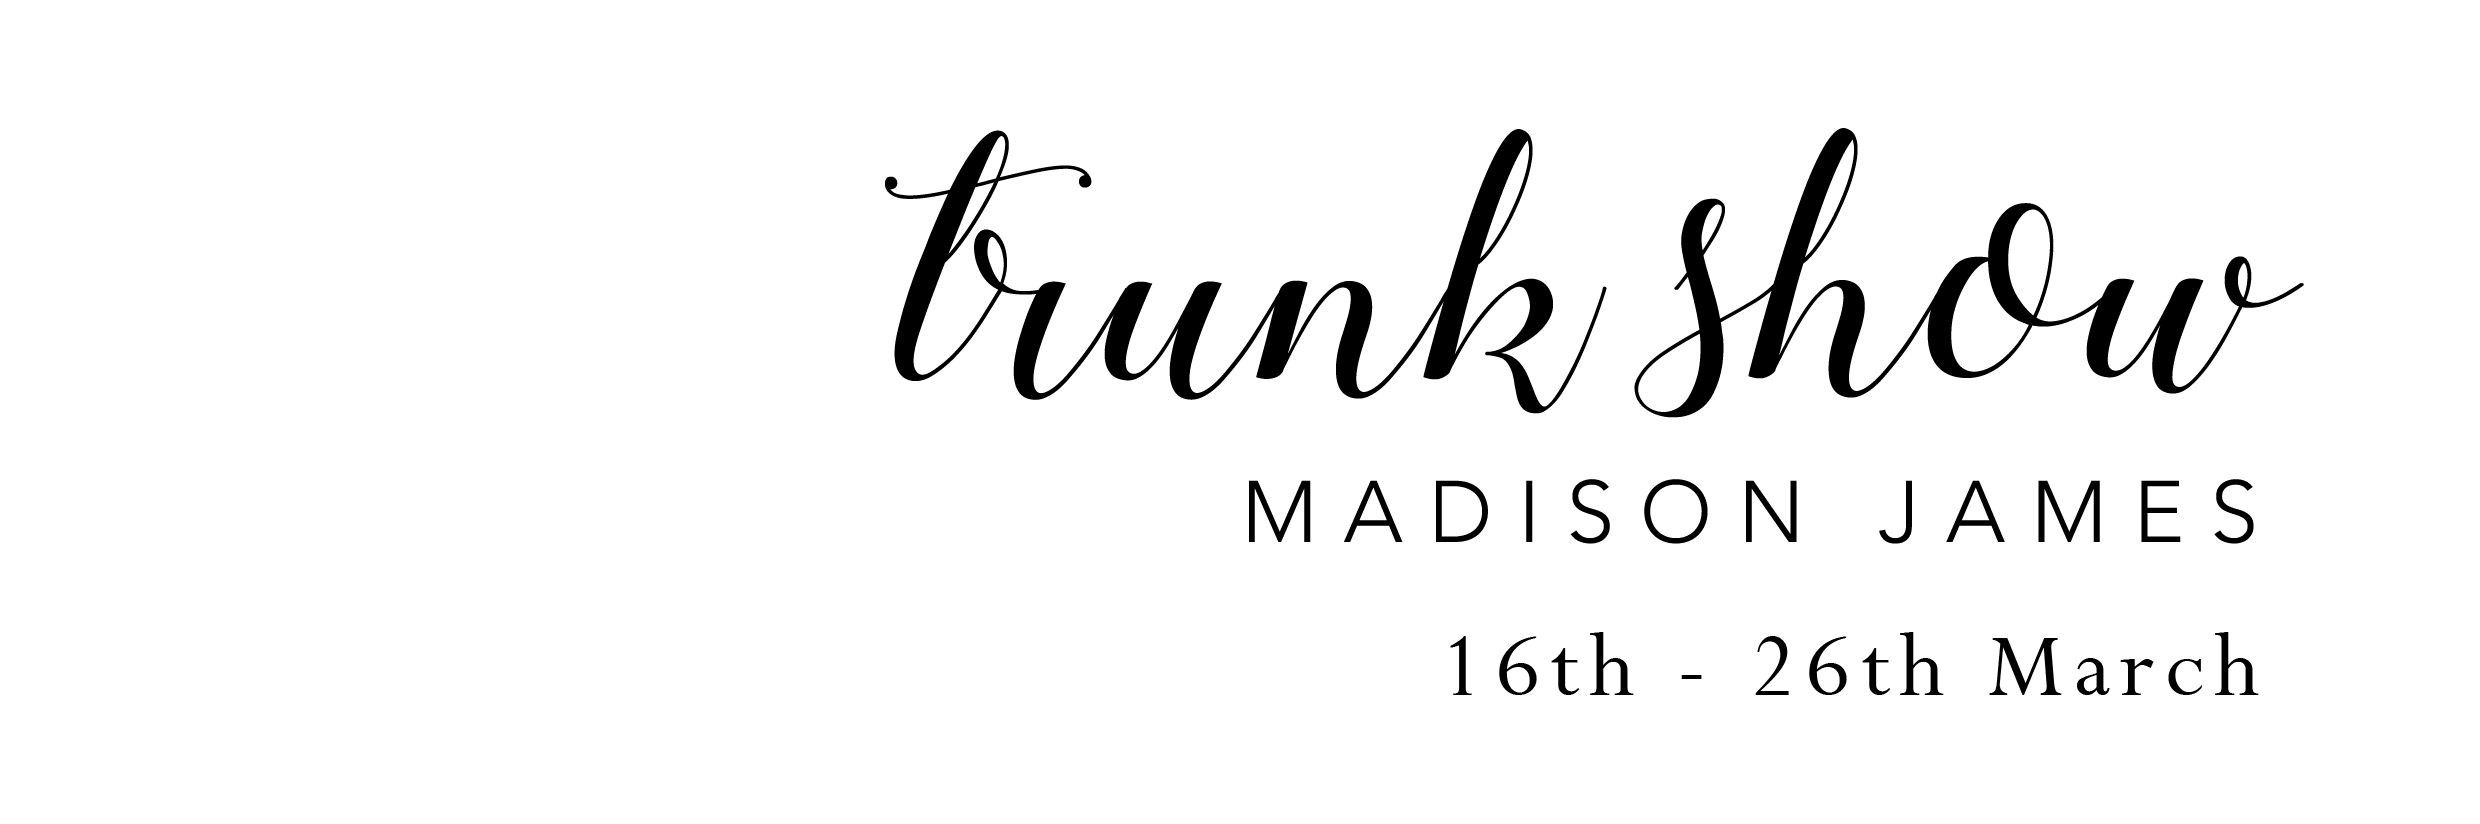 Madison James Trunk Show 2017